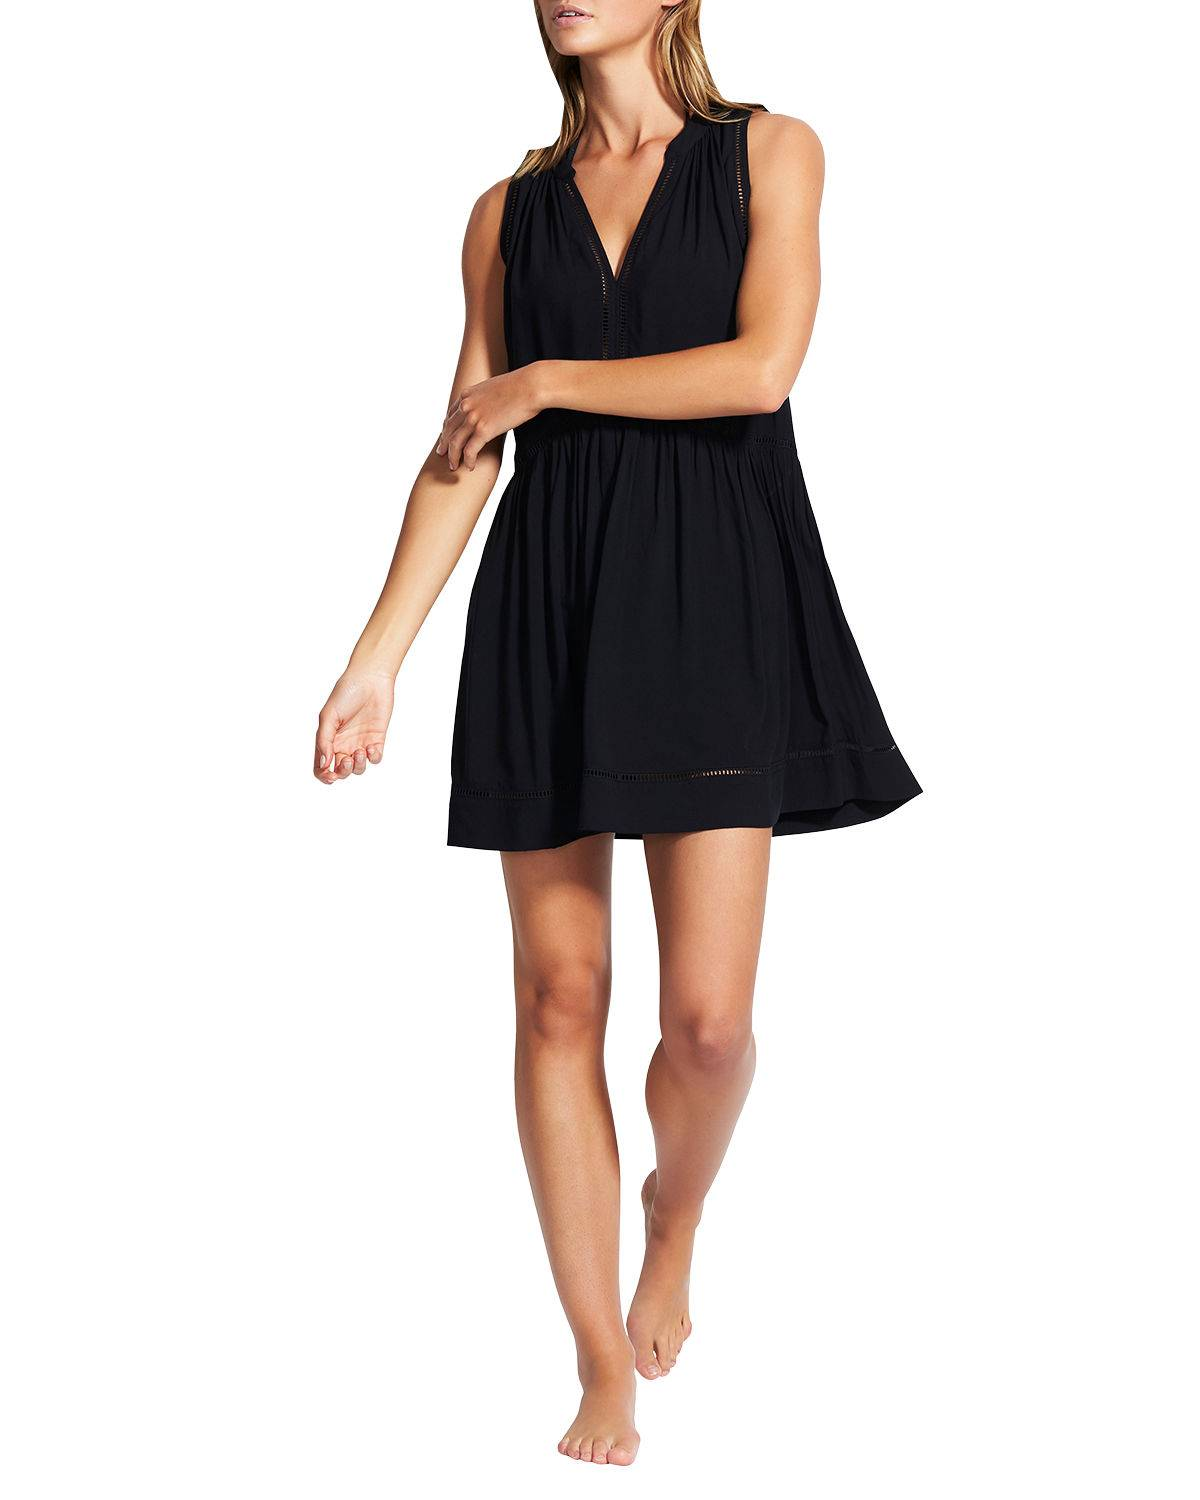 Seafolly Ladder Detail Coverup Dress - Size: Small